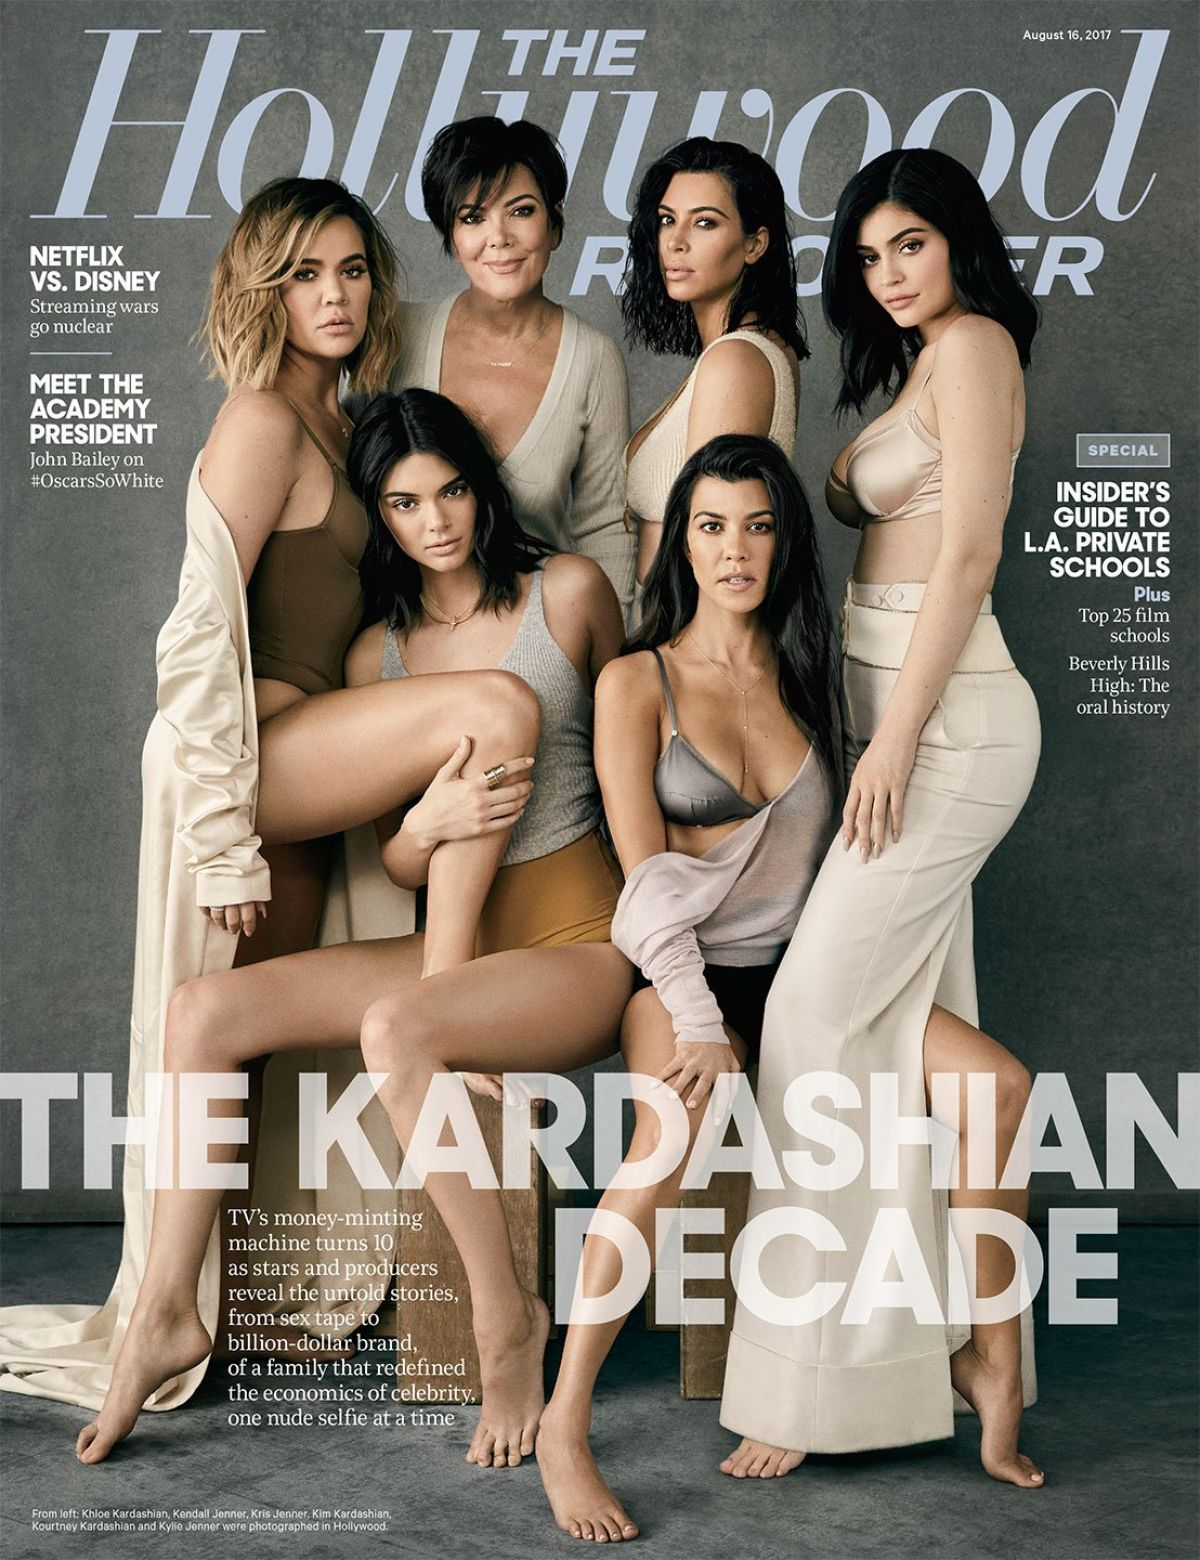 KENDALL, KYLIE and KRIS JENNER and KIM, KOURTNEY and KHLOE KARDASHIAN for Hollywood Reporter, August 2017